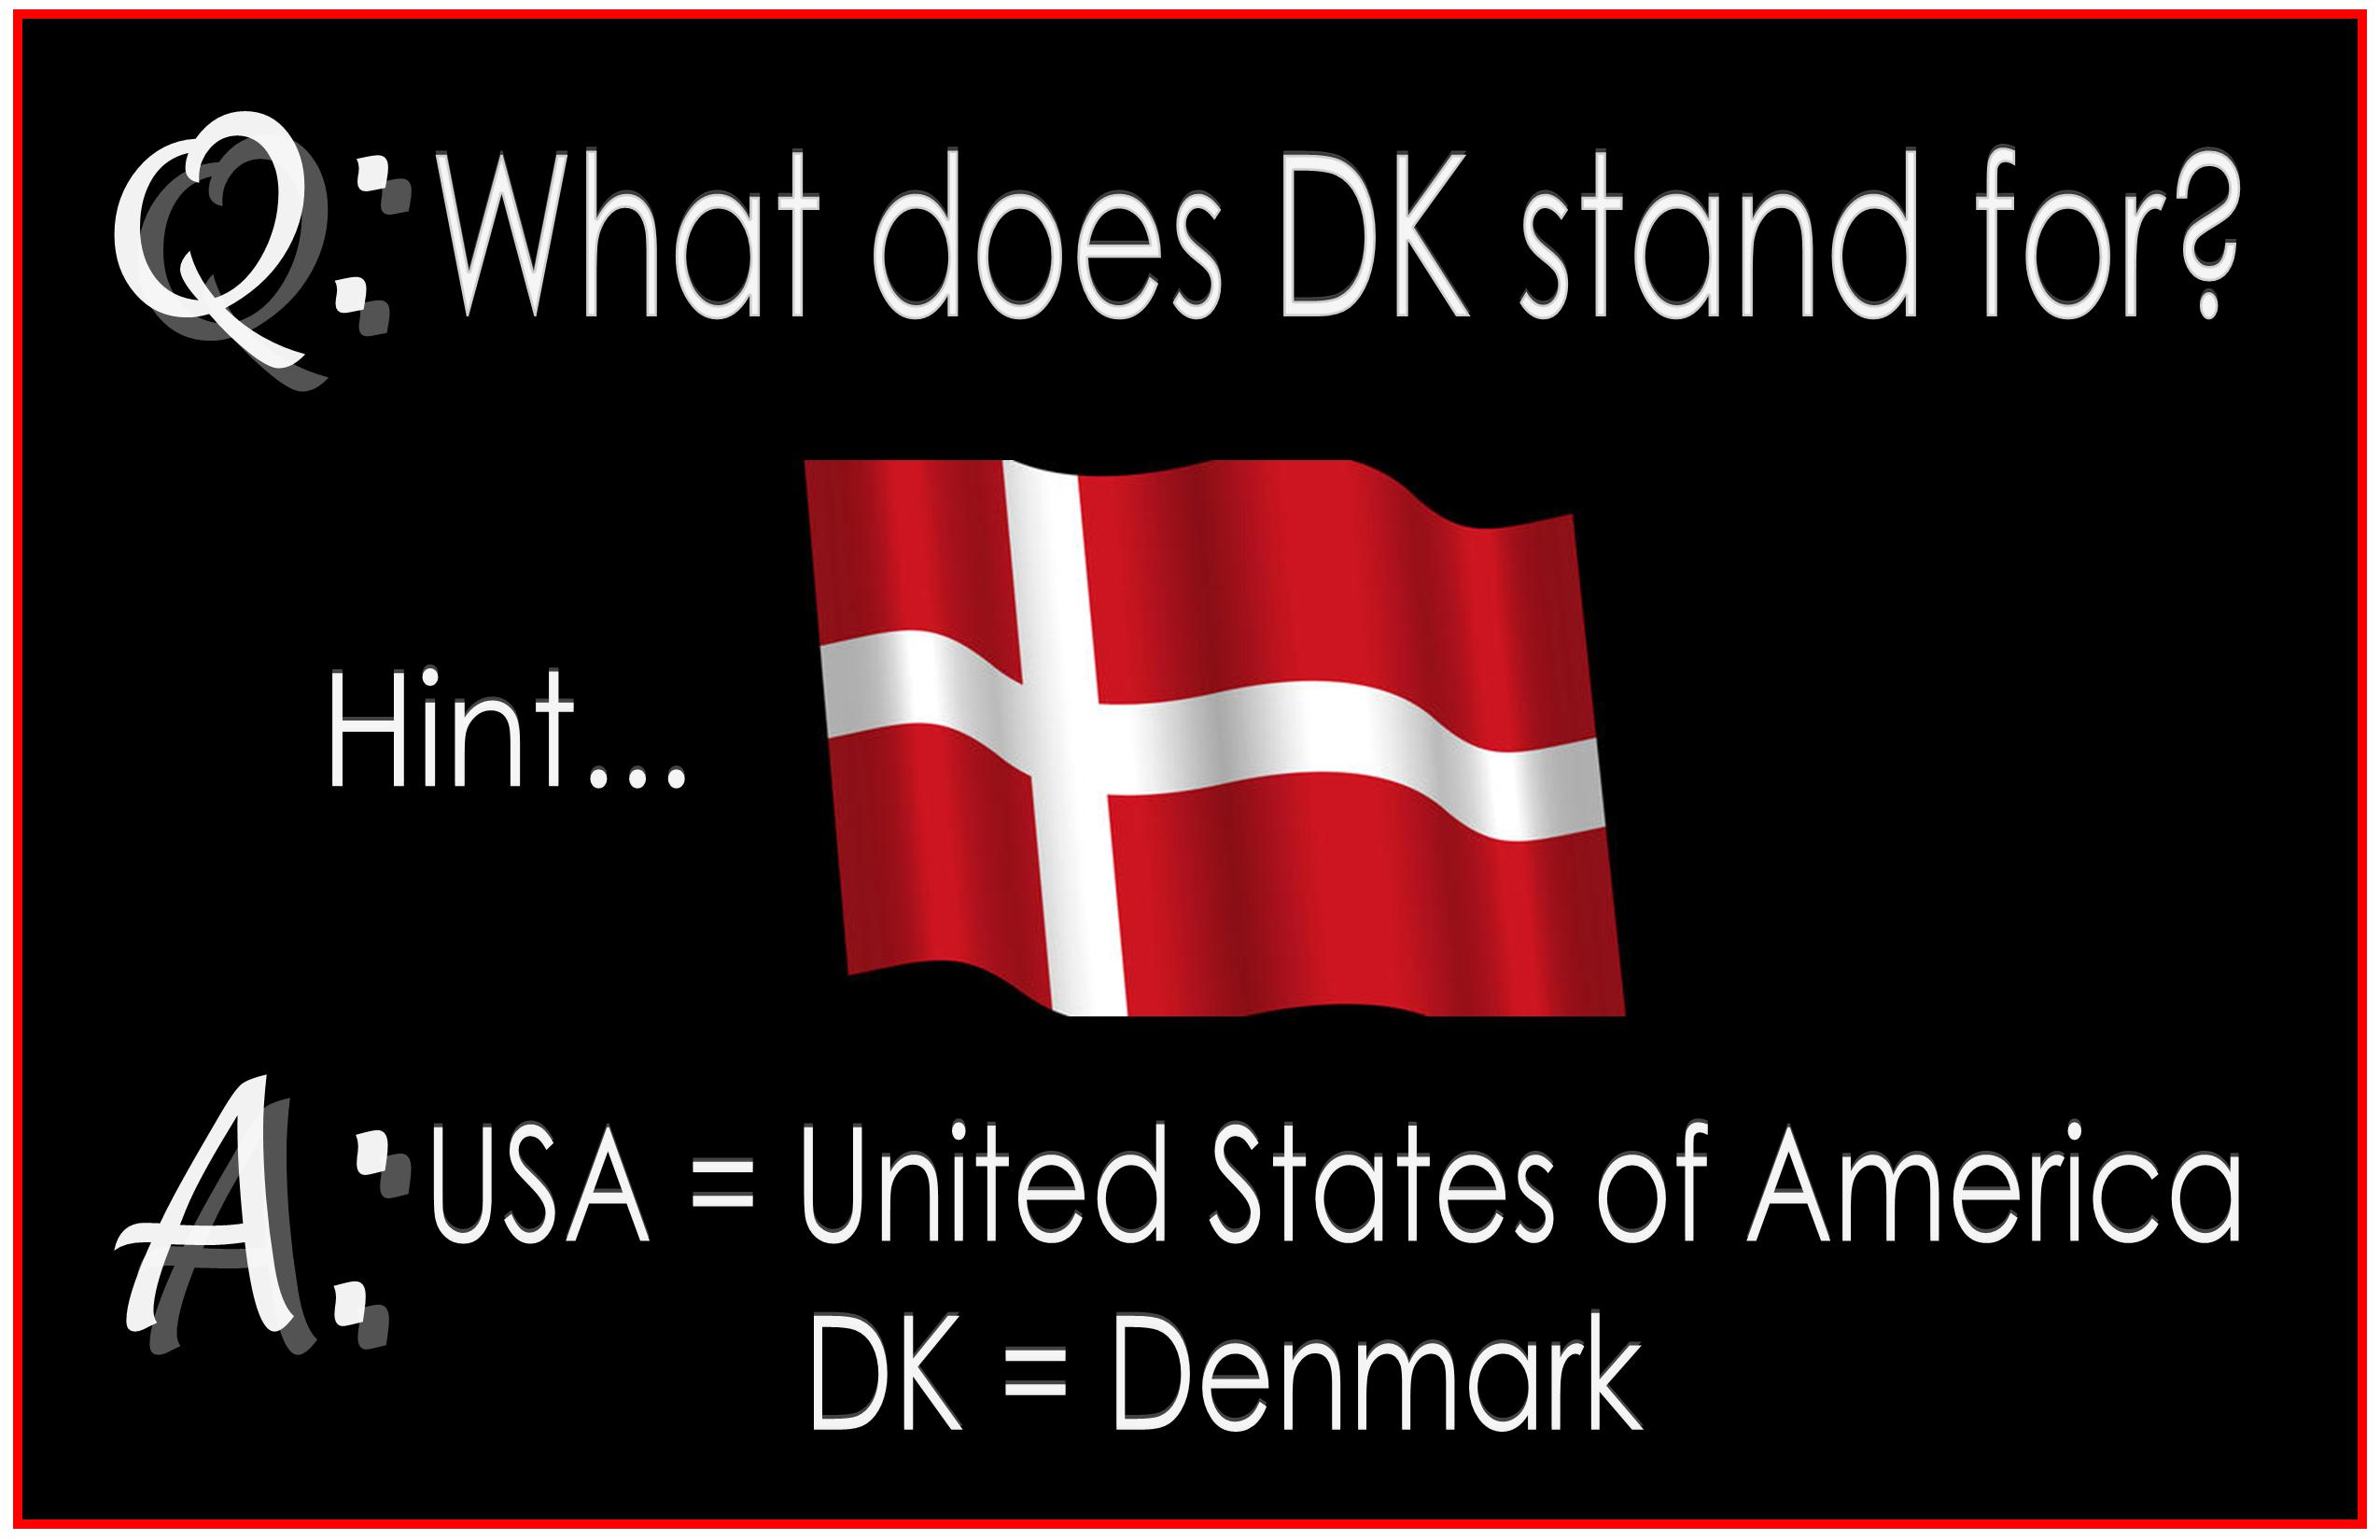 What does DK stand for